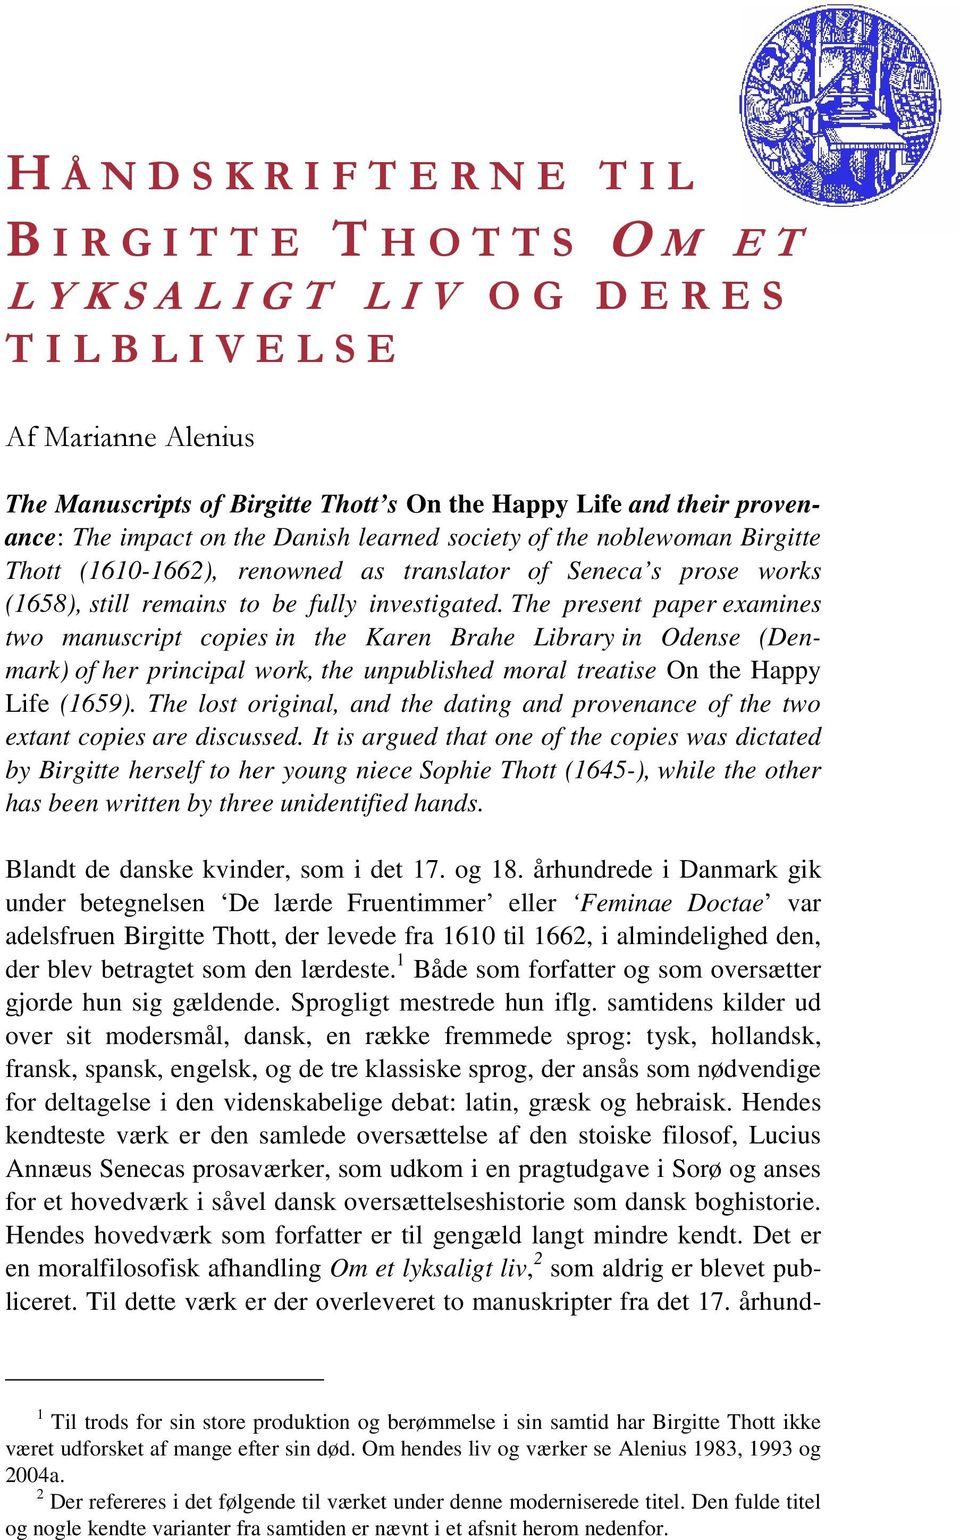 The present paper examines two manuscript copies in the Karen Brahe Library in Odense (Denmark) of her principal work, the unpublished moral treatise On the Happy Life (1659).